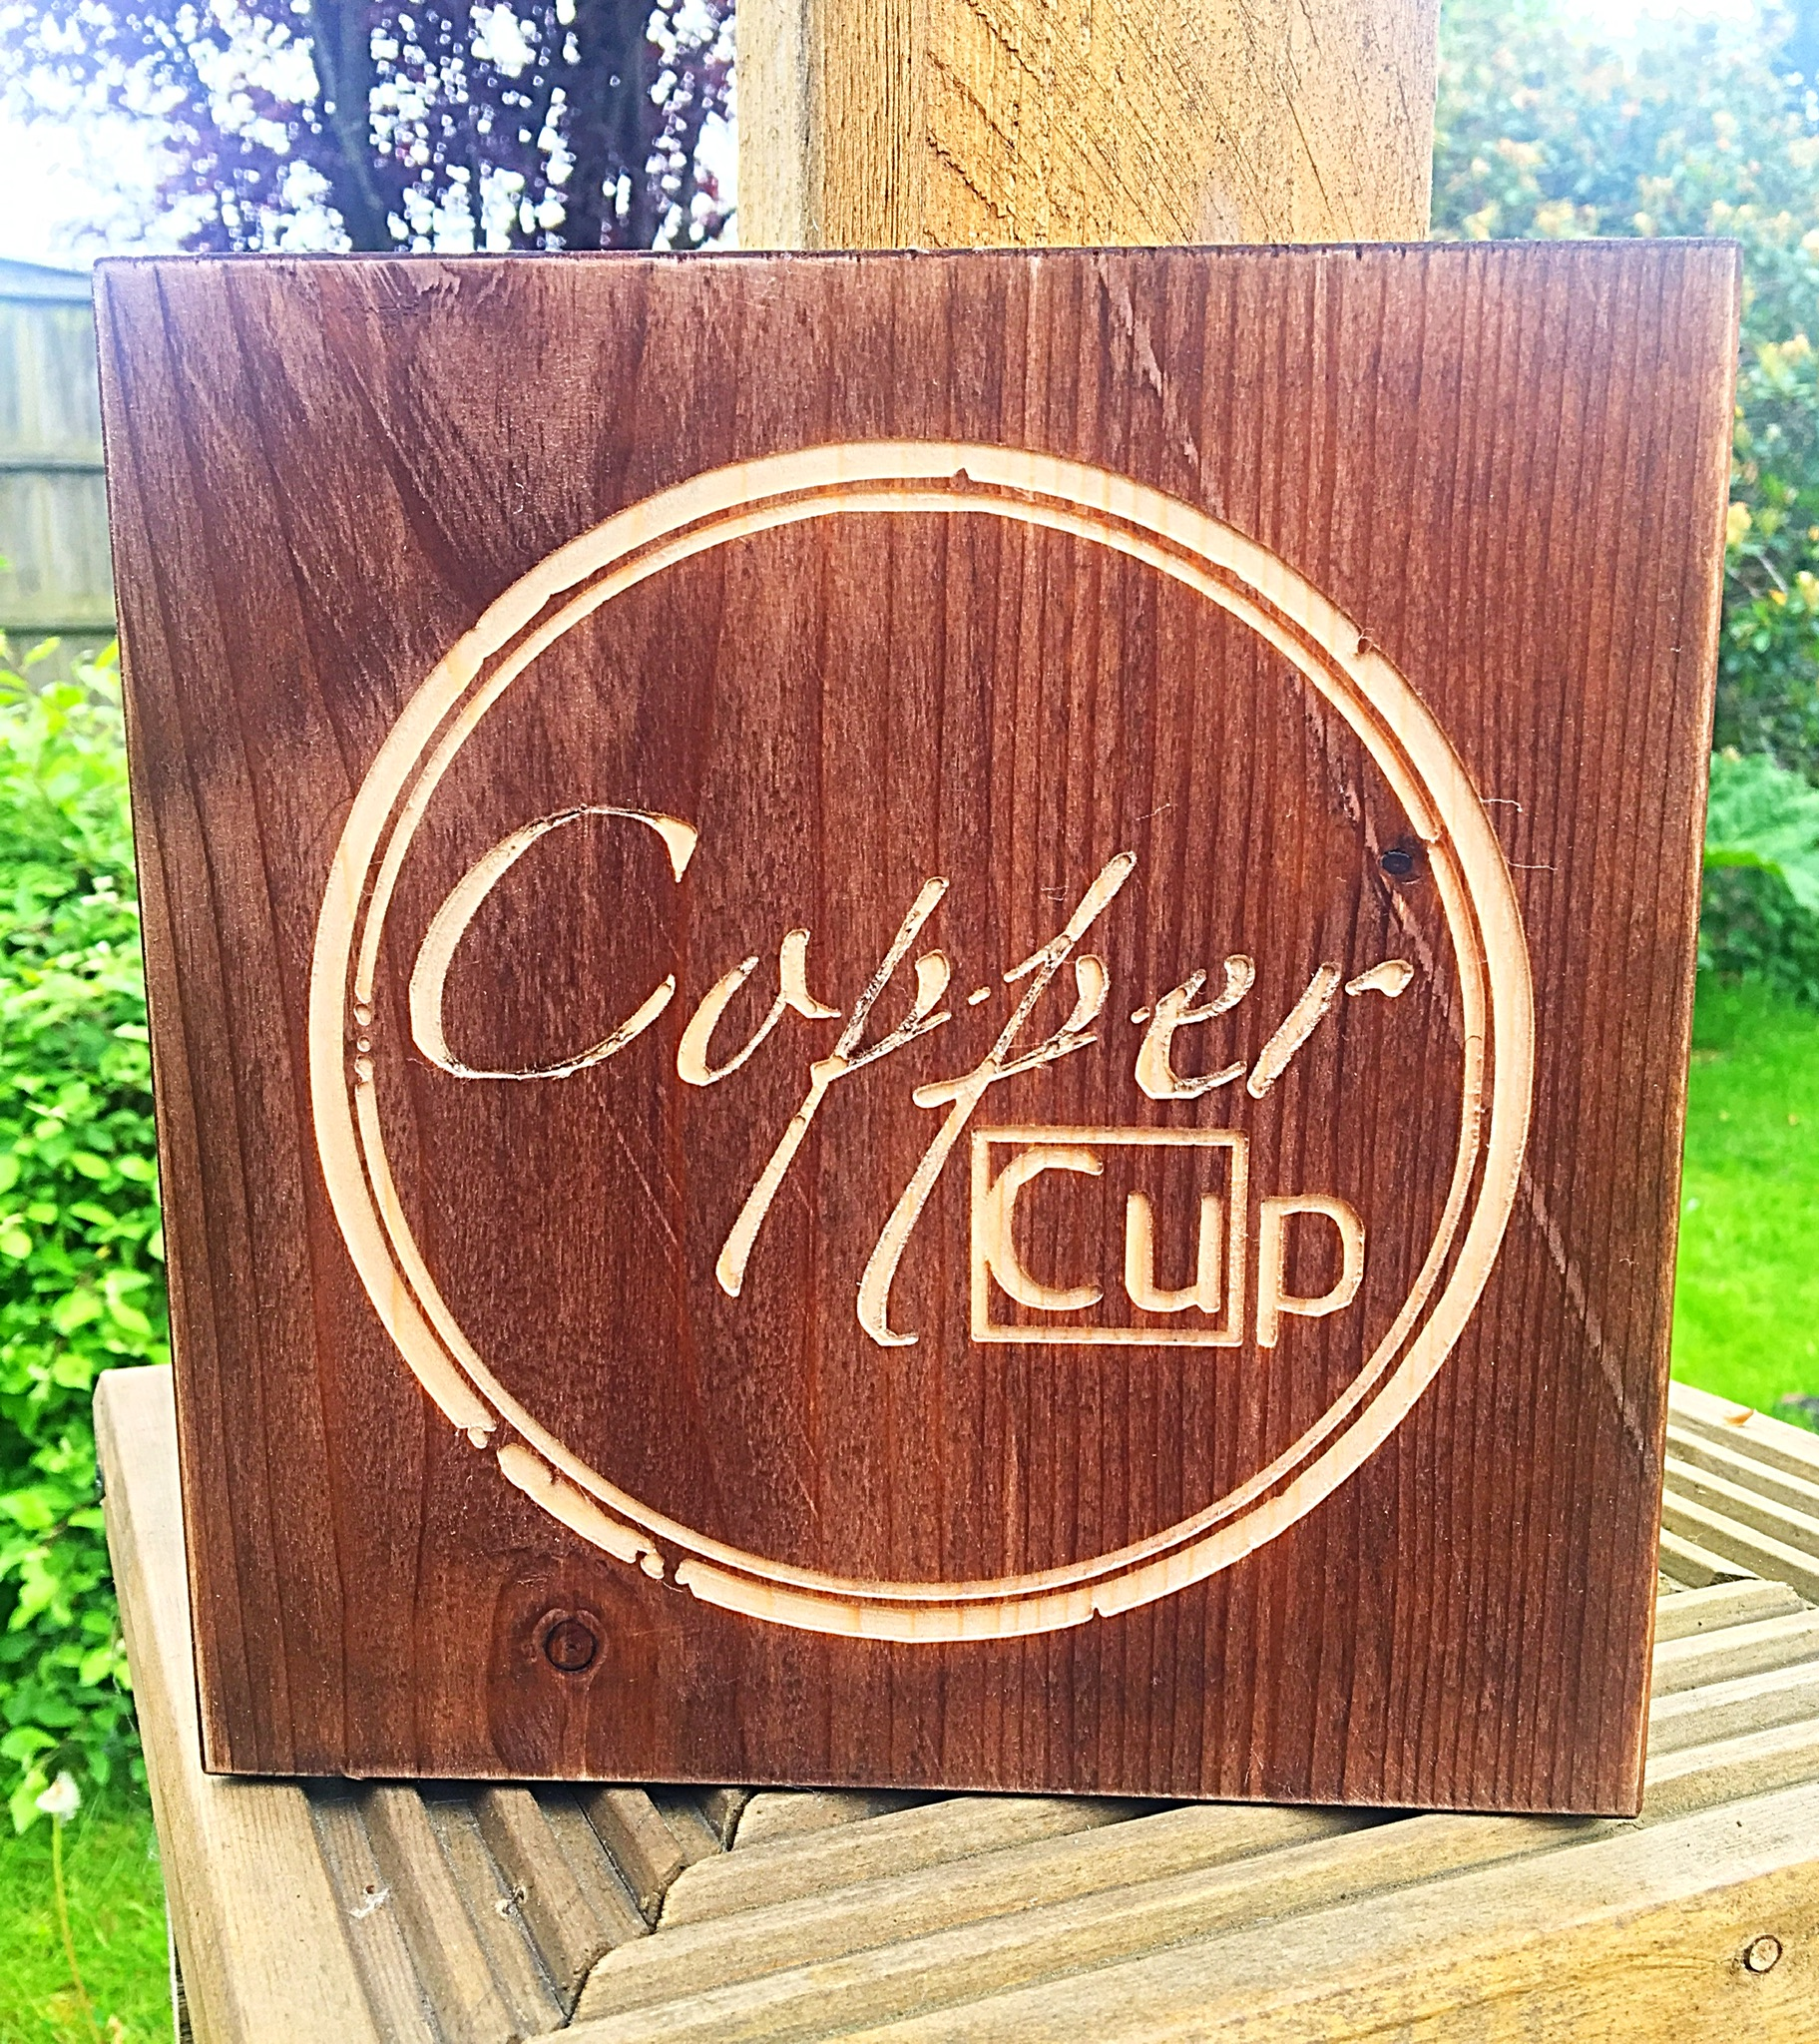 It was wonderful to work on this rustic sign with Lauren at Copper Cup. It will be lovingly finished with a copper frame and we cannot wait to see the result!  For handmade, copper home accessories and gifts, visit their shop and find out more  here